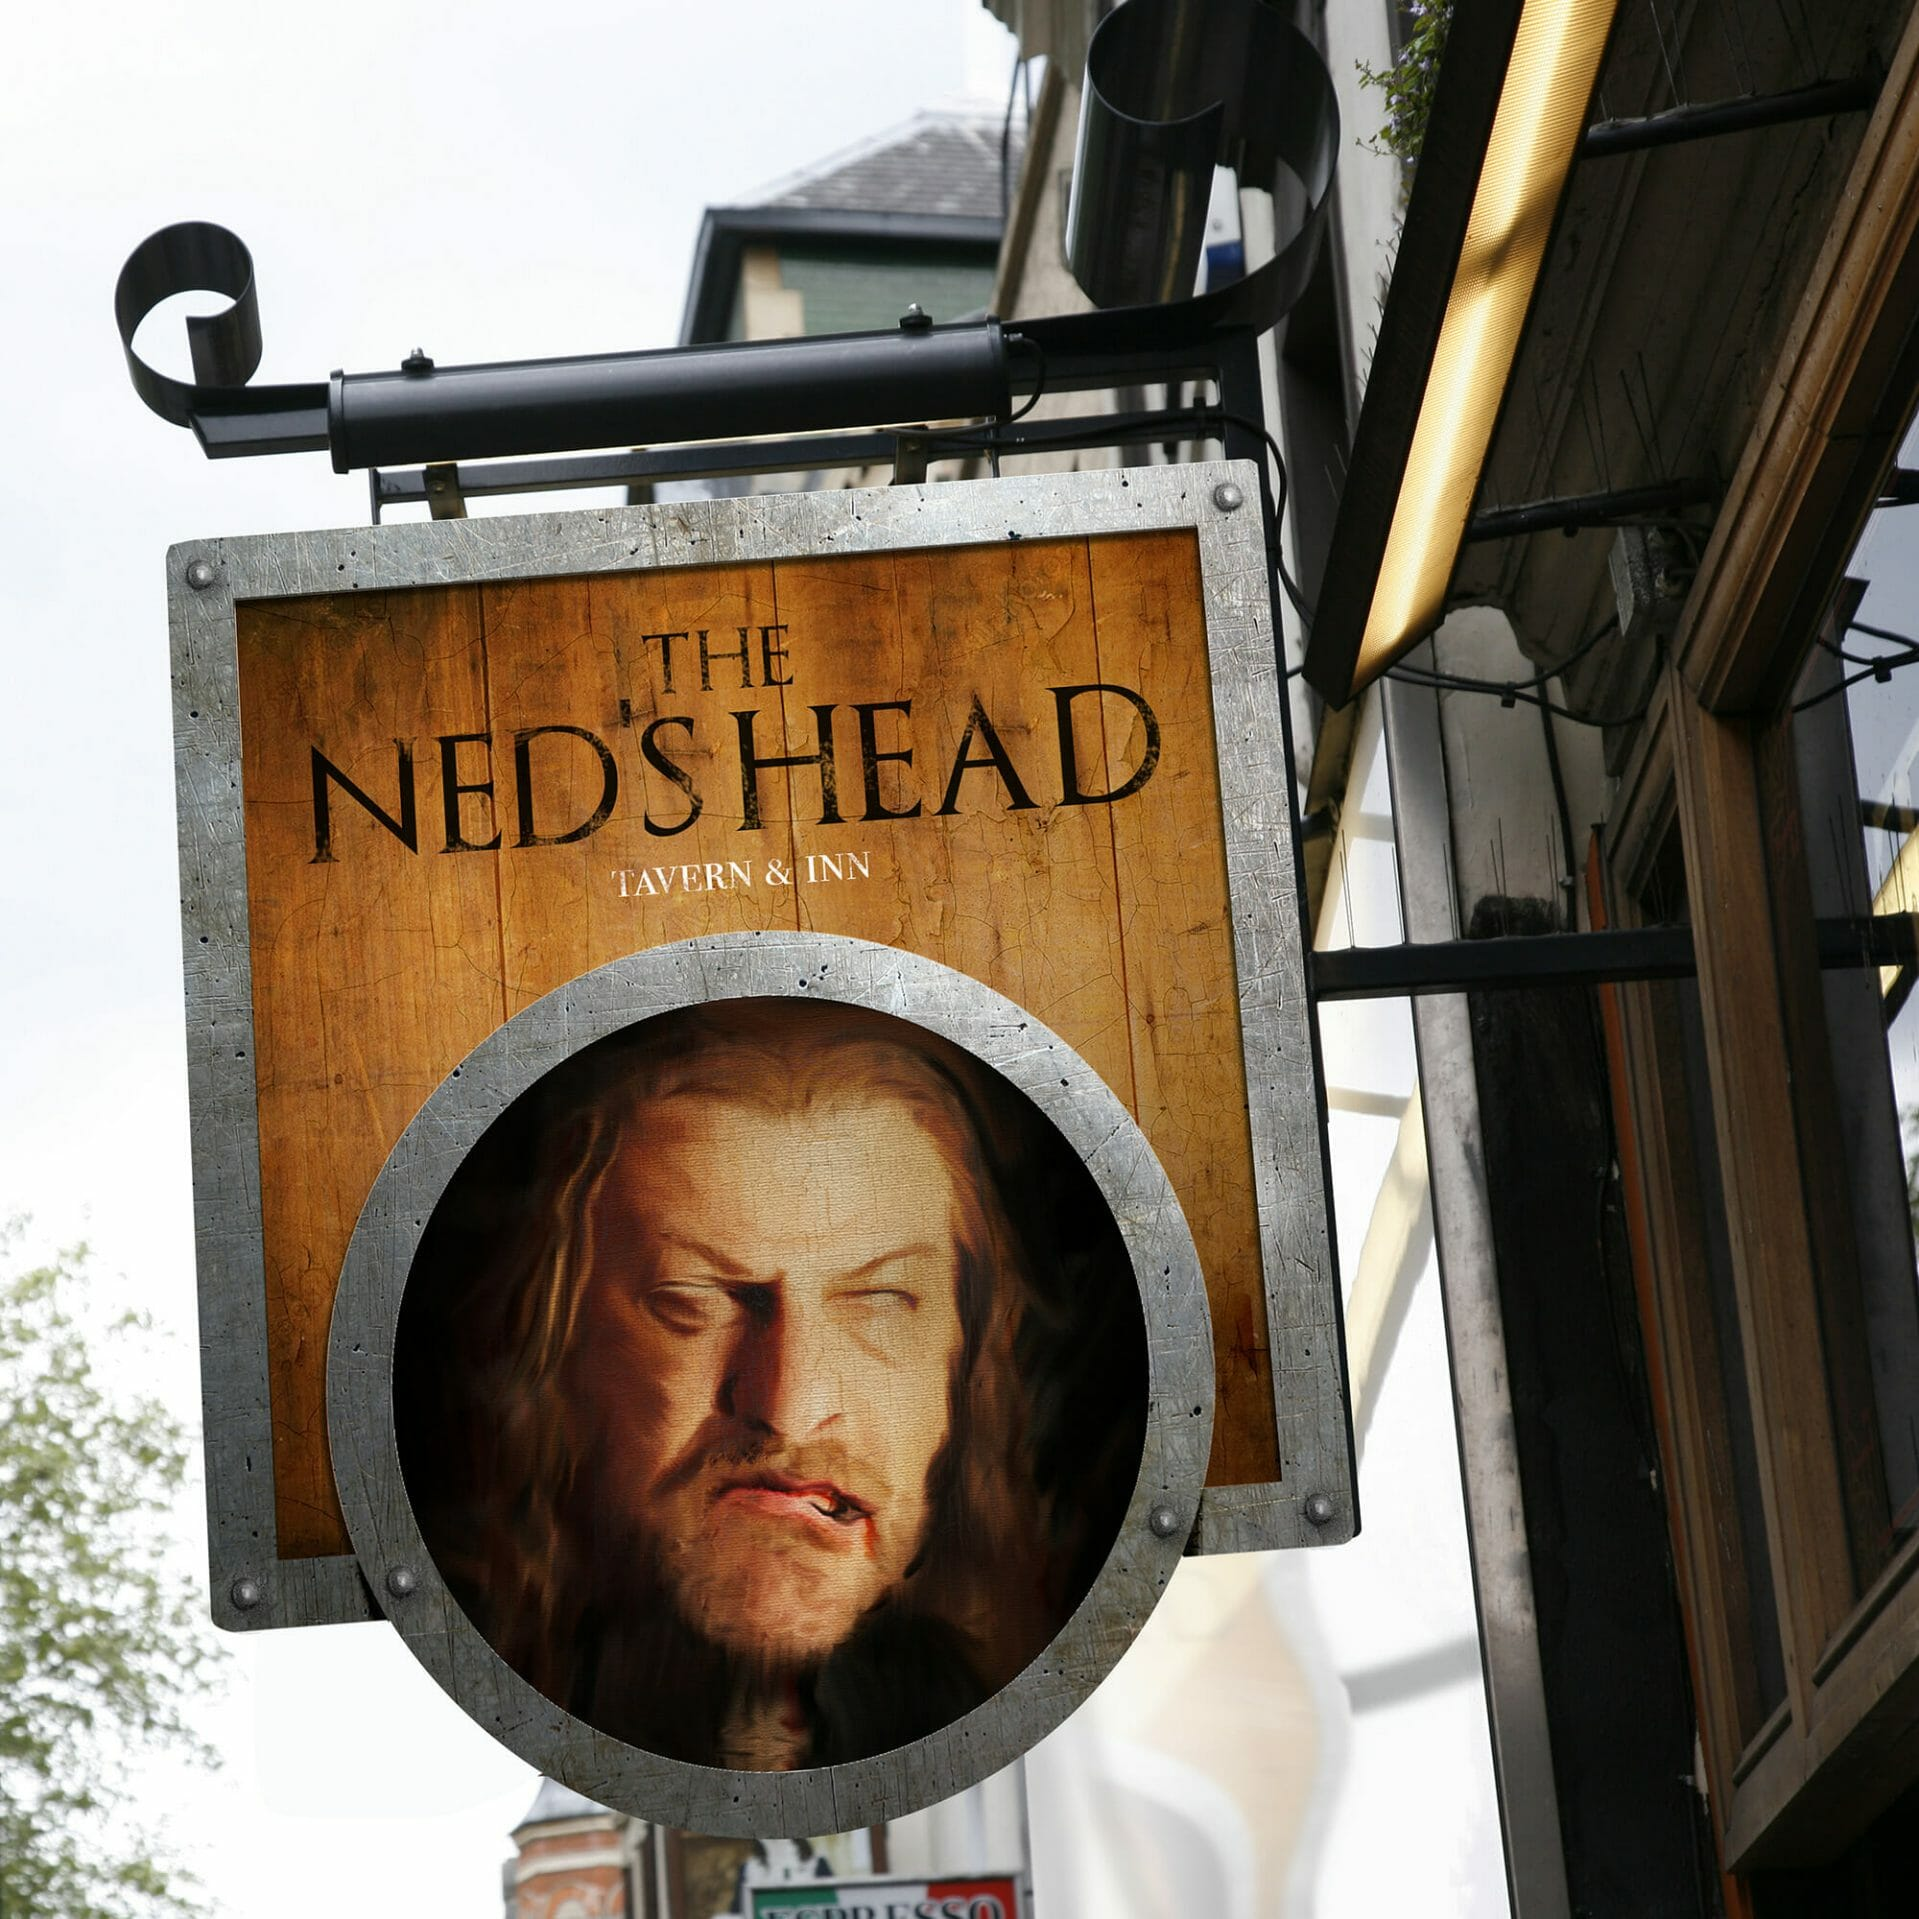 The Ned's Head